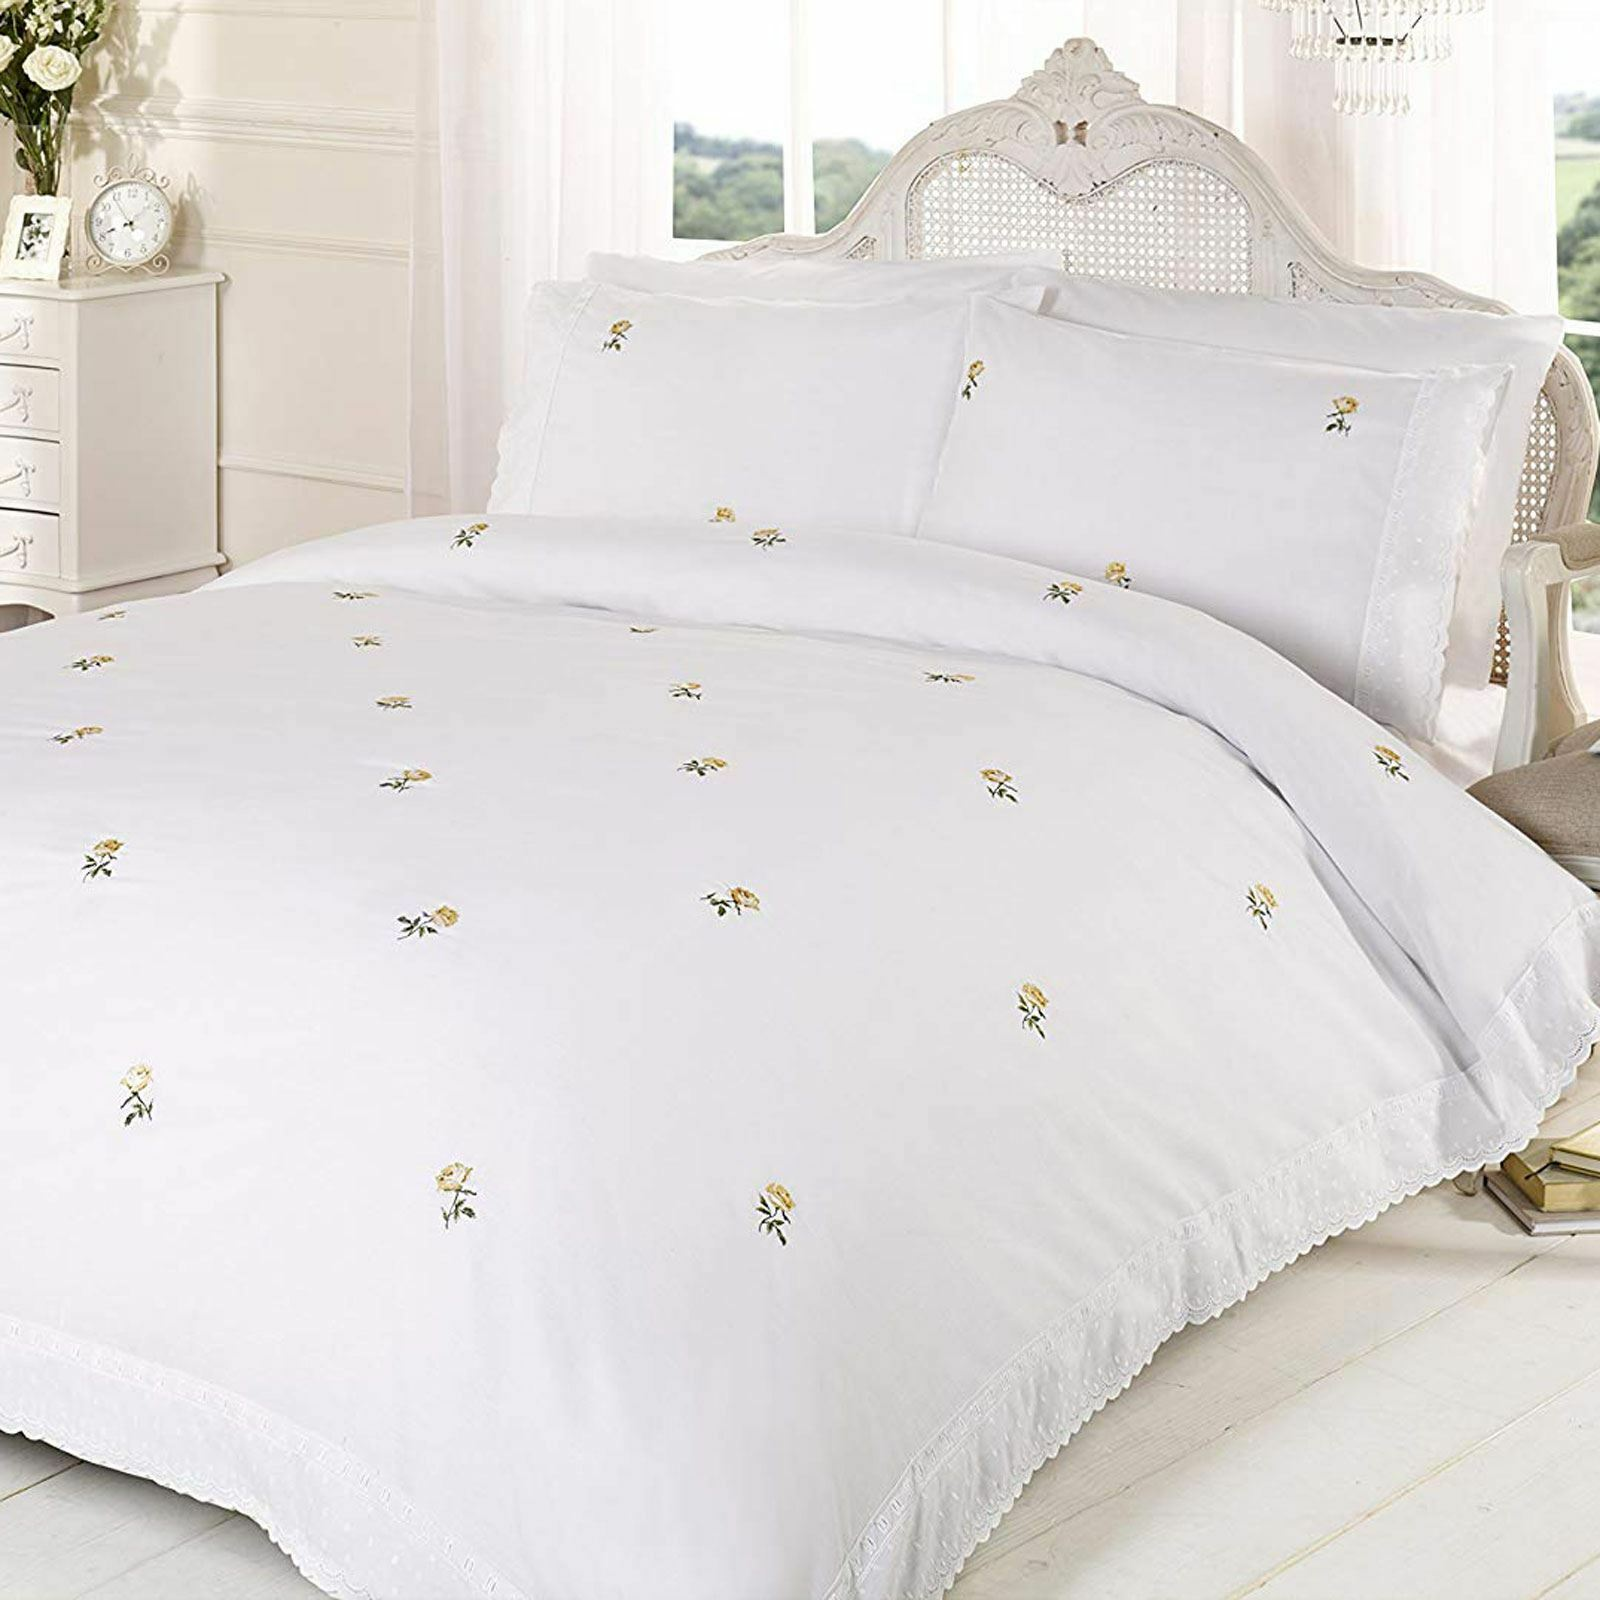 ALICIA FLORAL WHITE   YELLOW SINGLE DUVET COVER SET EMBROIDERED BEDDING